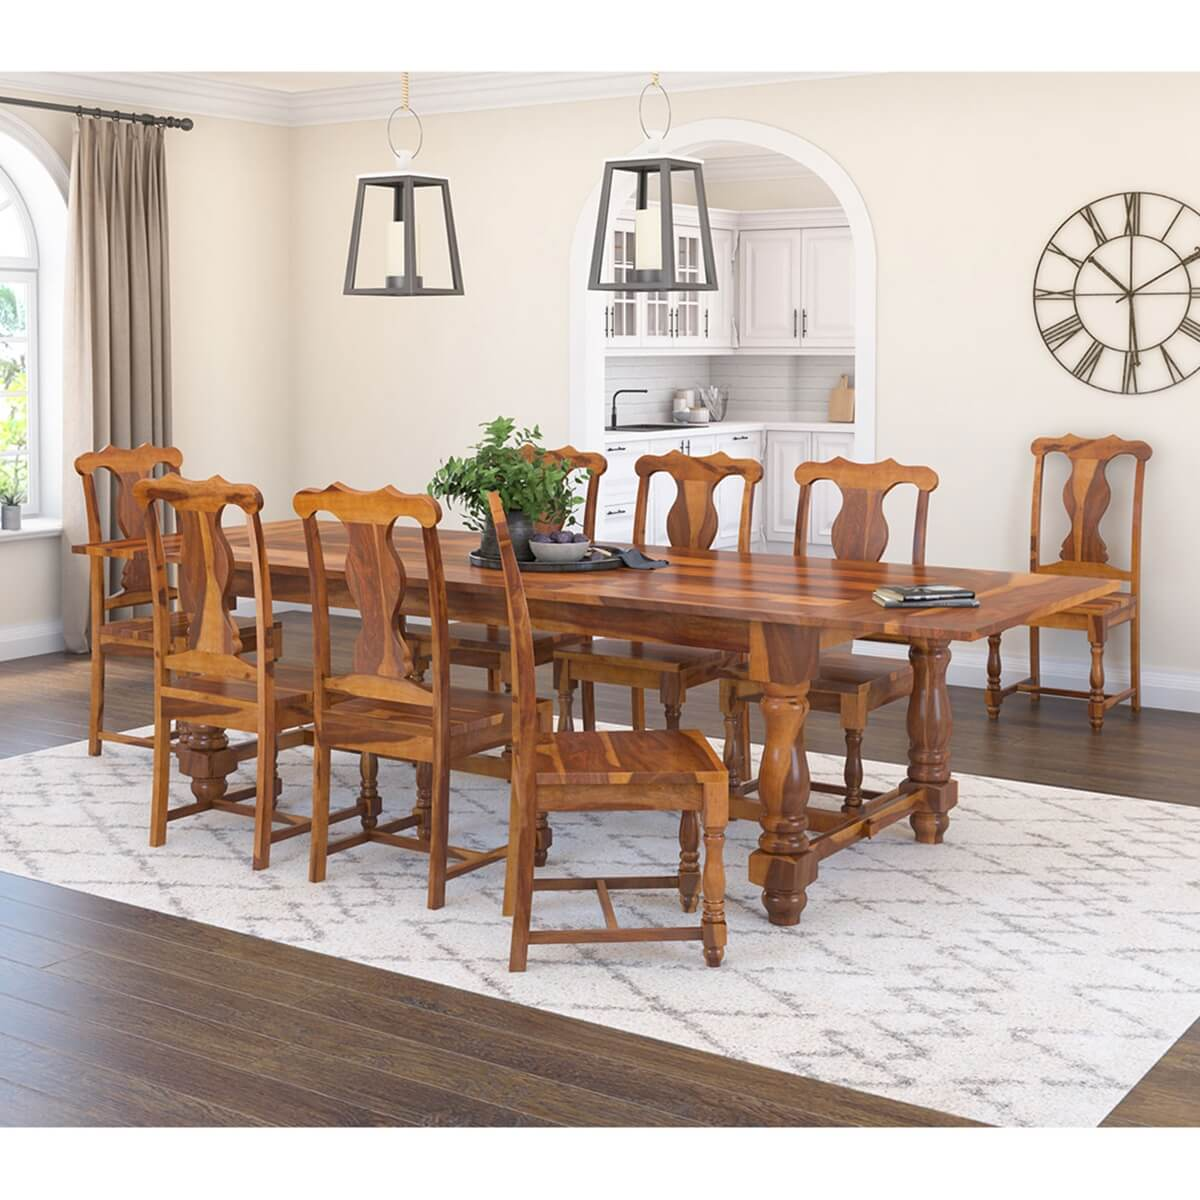 Rustic solid wood dining table chair set furniture w for Wood dining room furniture